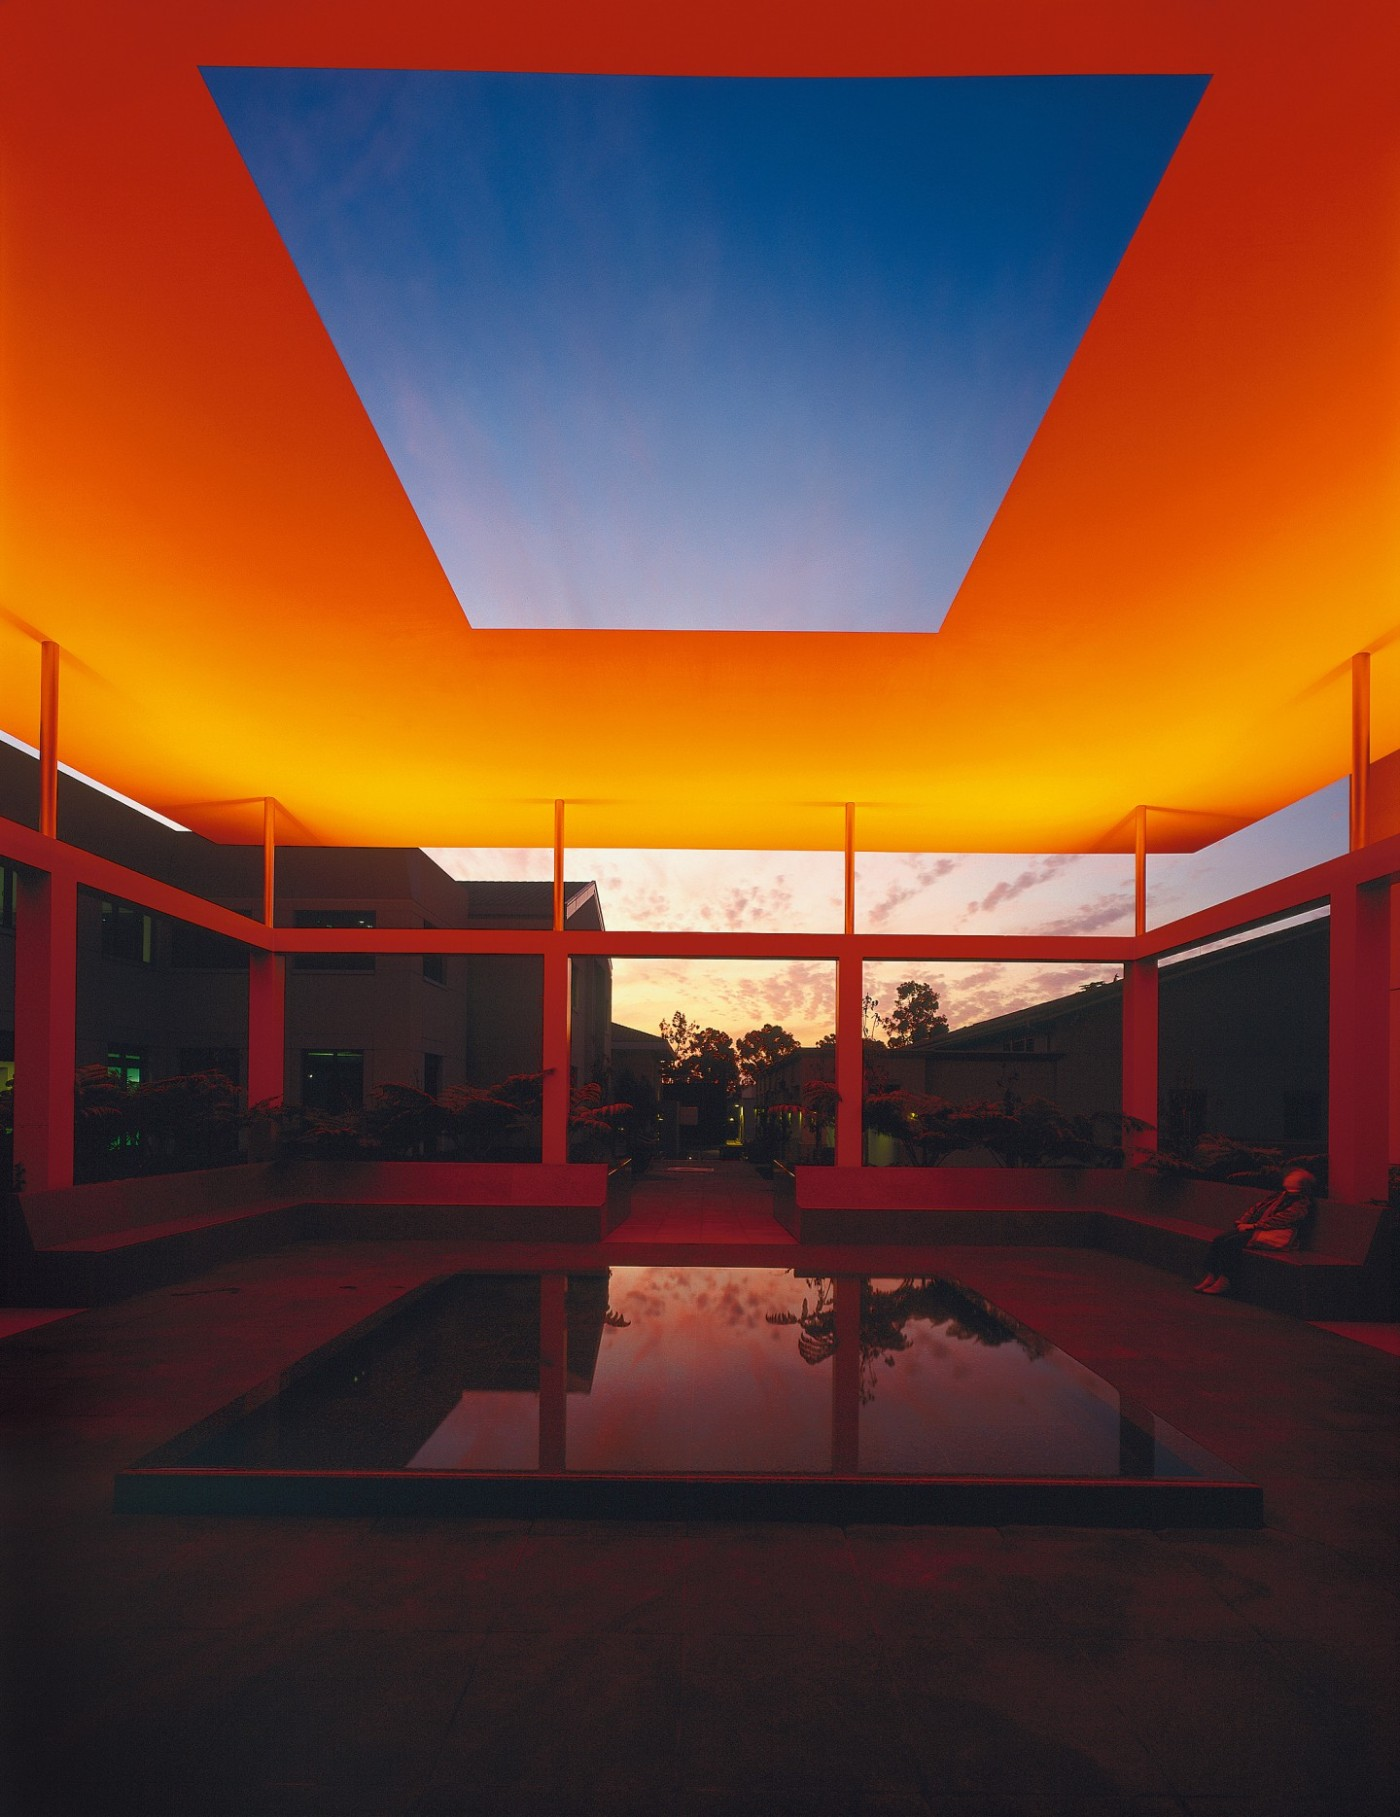 dividing-the-light-2007-james-turrell